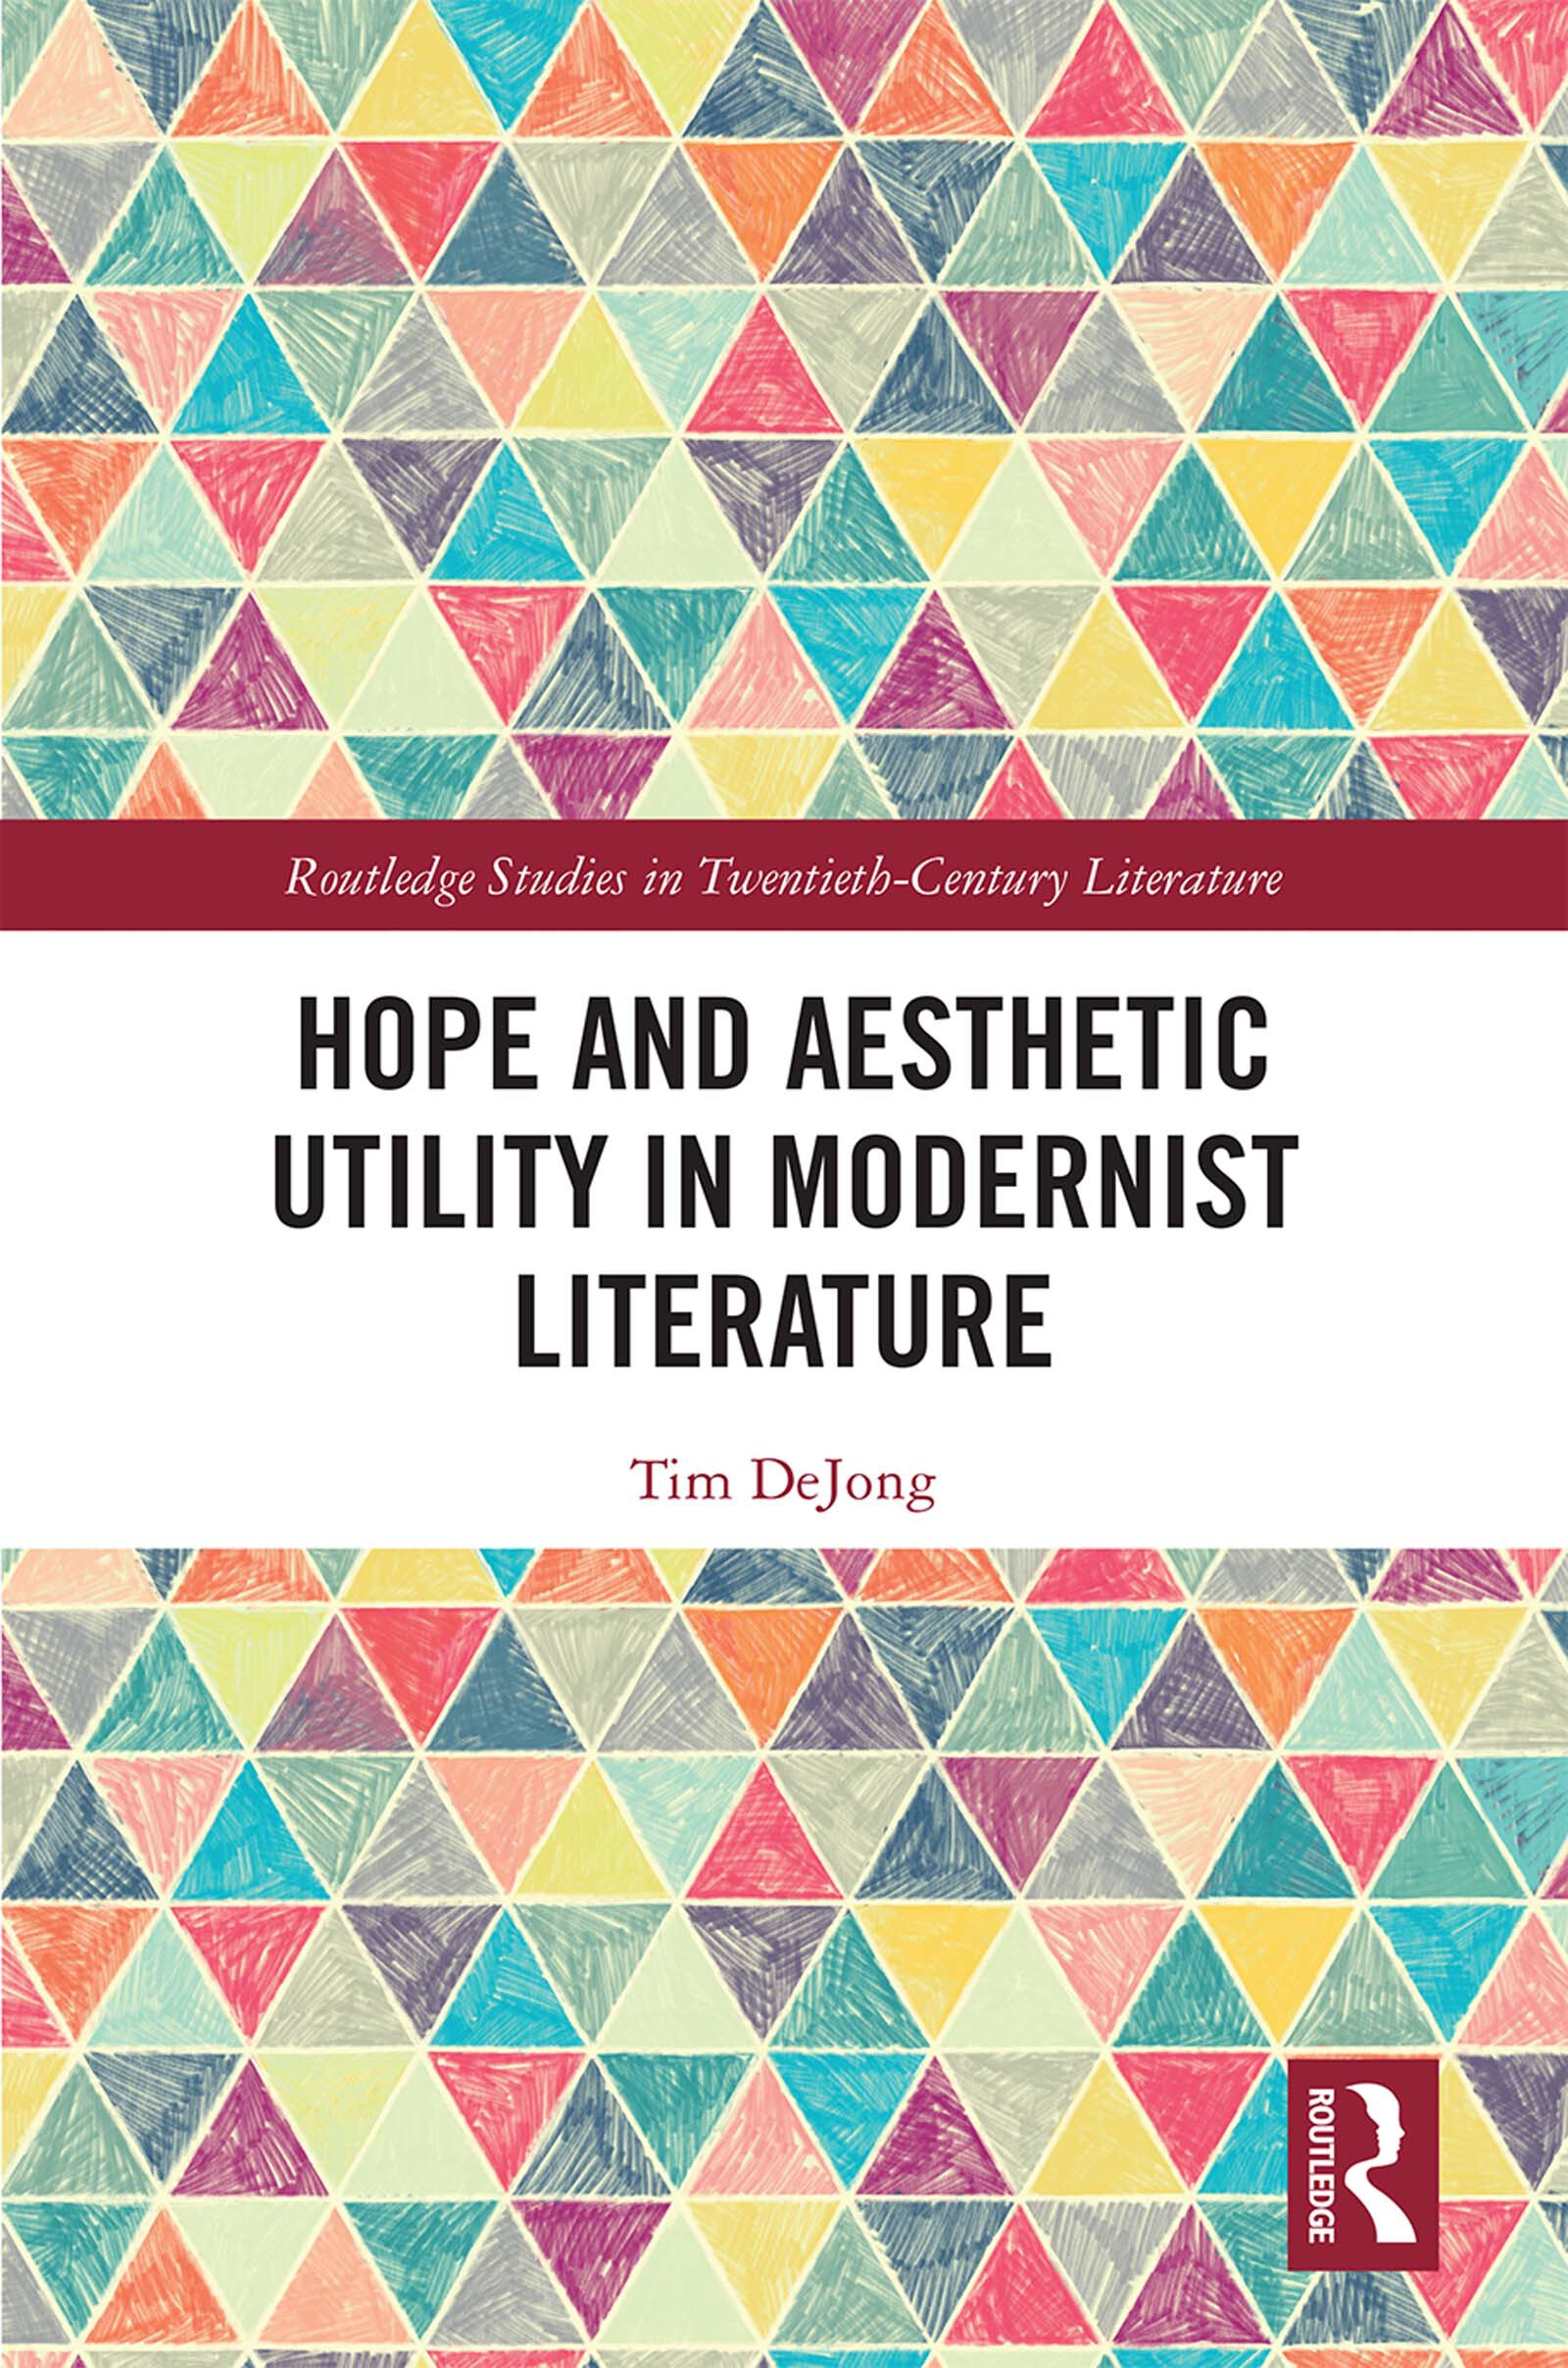 Hope and Aesthetic Utility in Modernist Literature